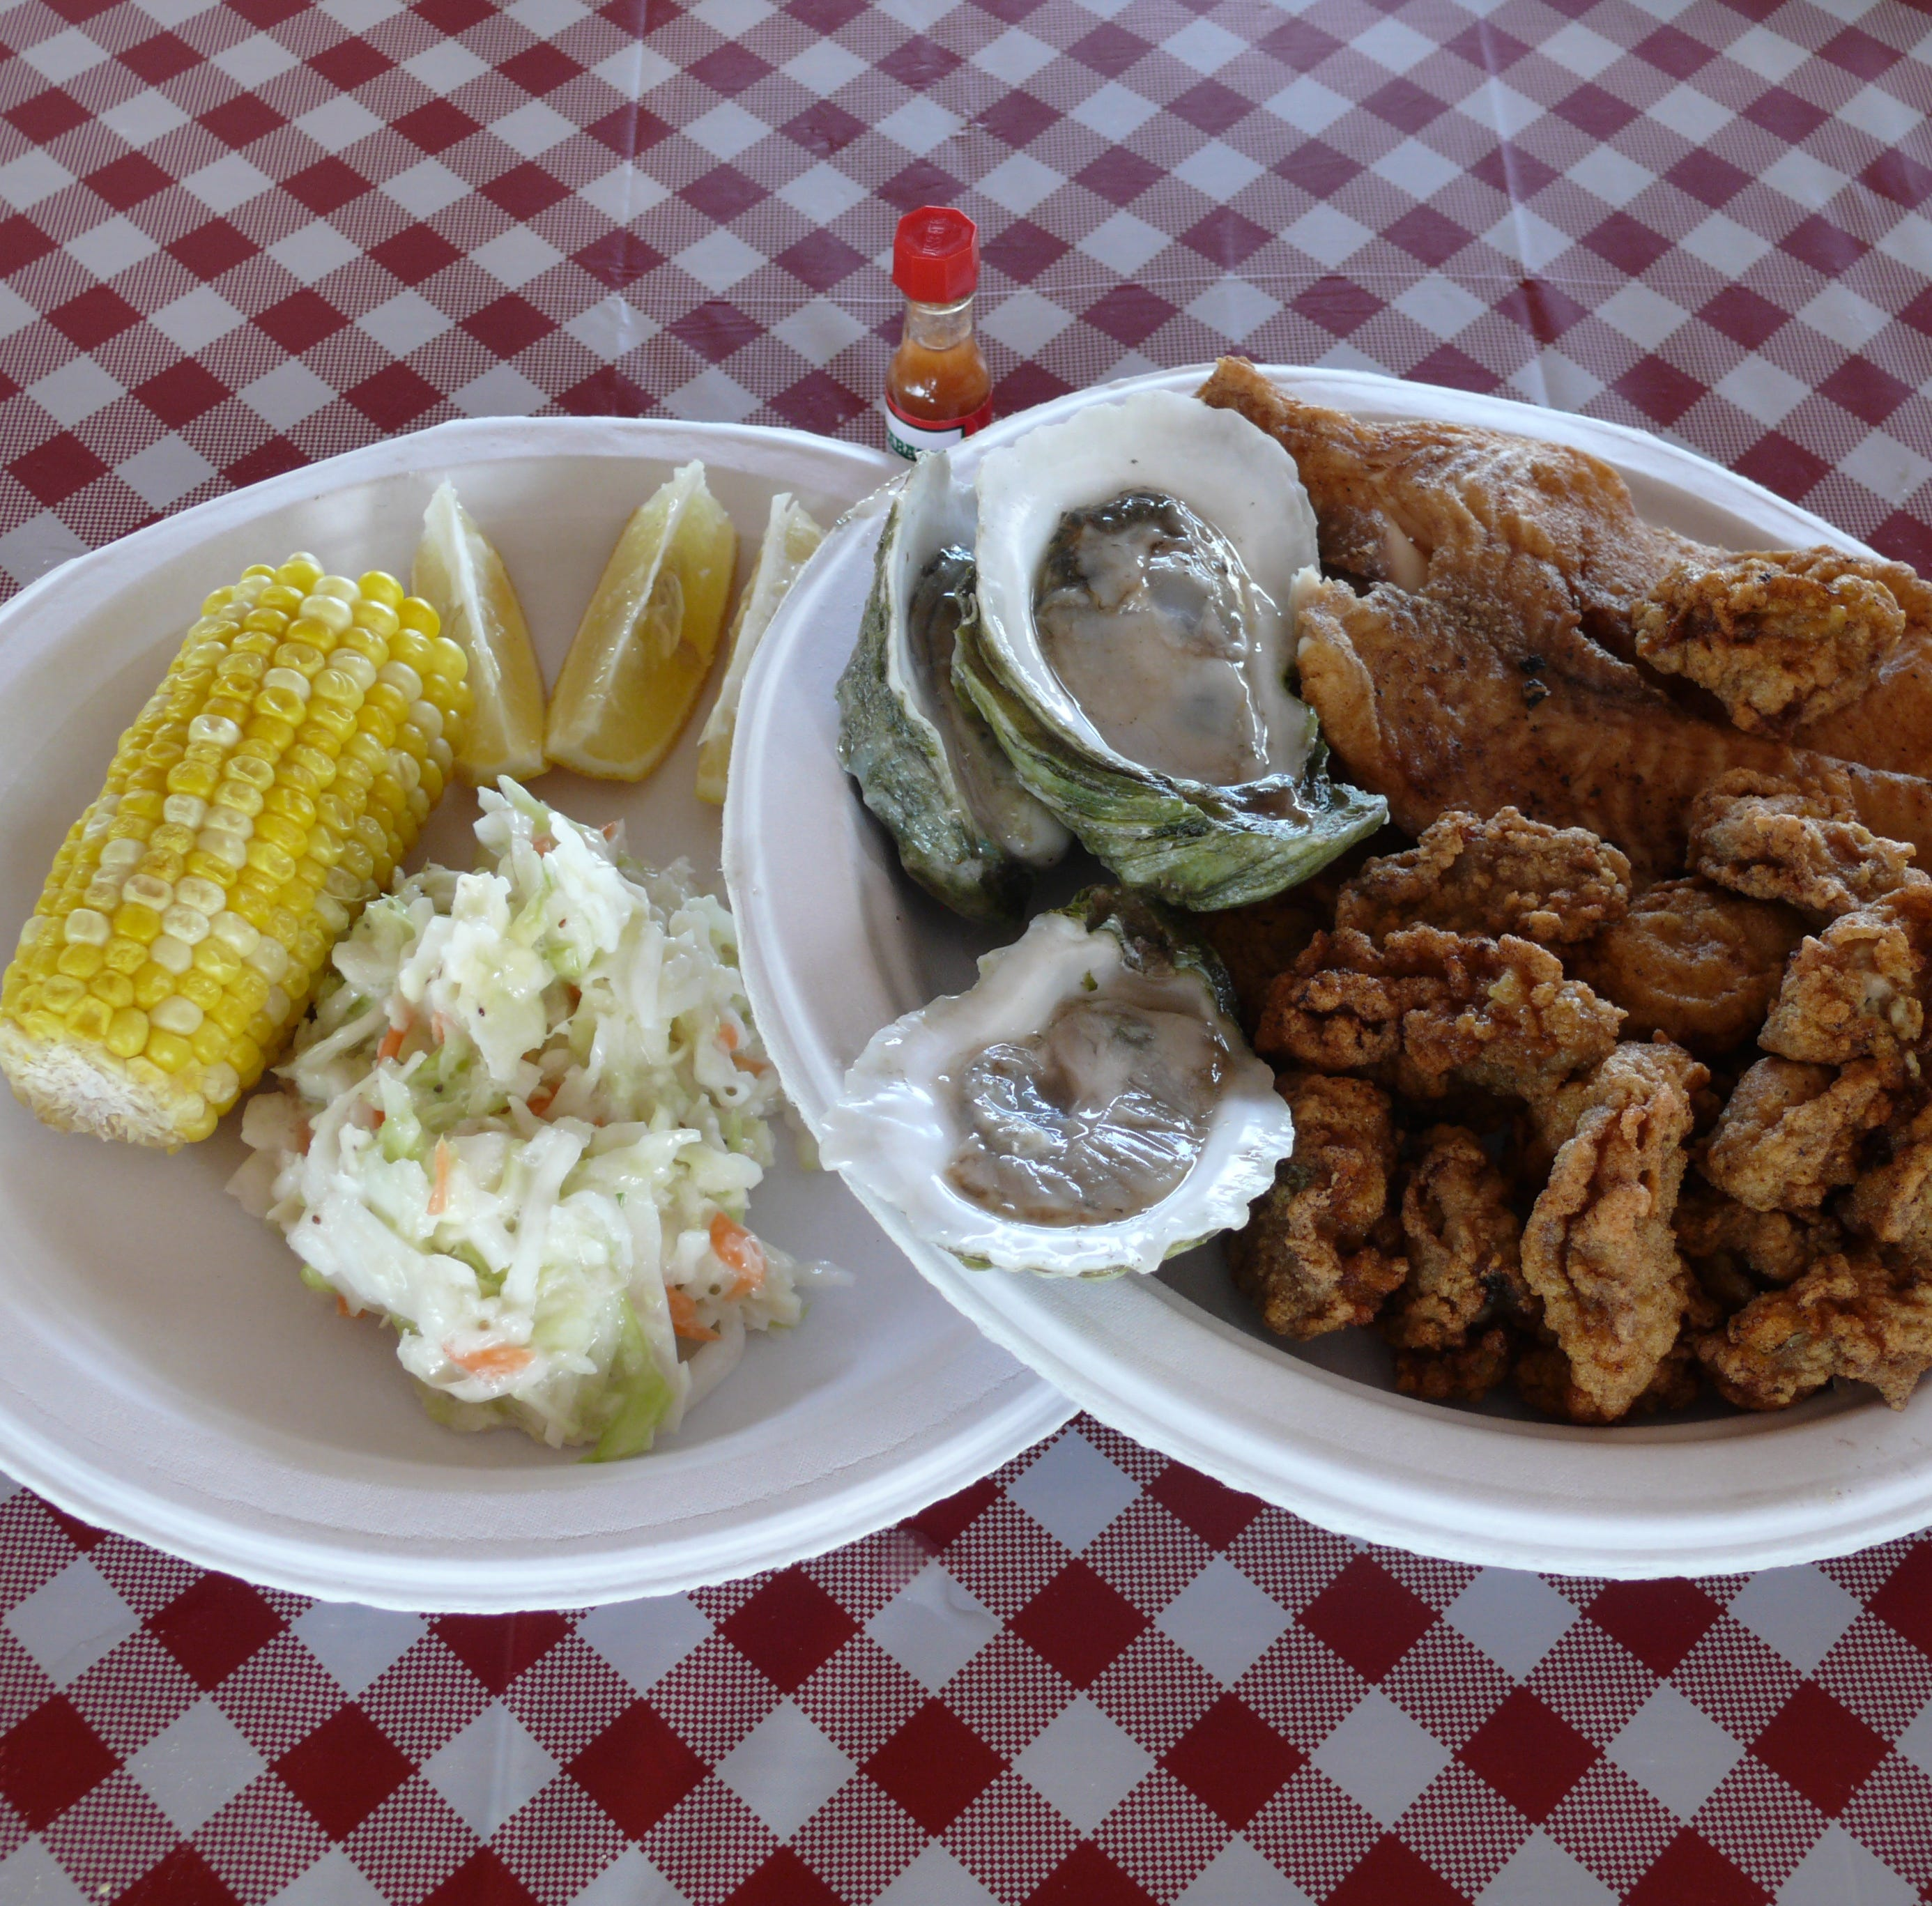 Historic Merritt Island Field Manor to host oyster and fish fry on Oct. 20